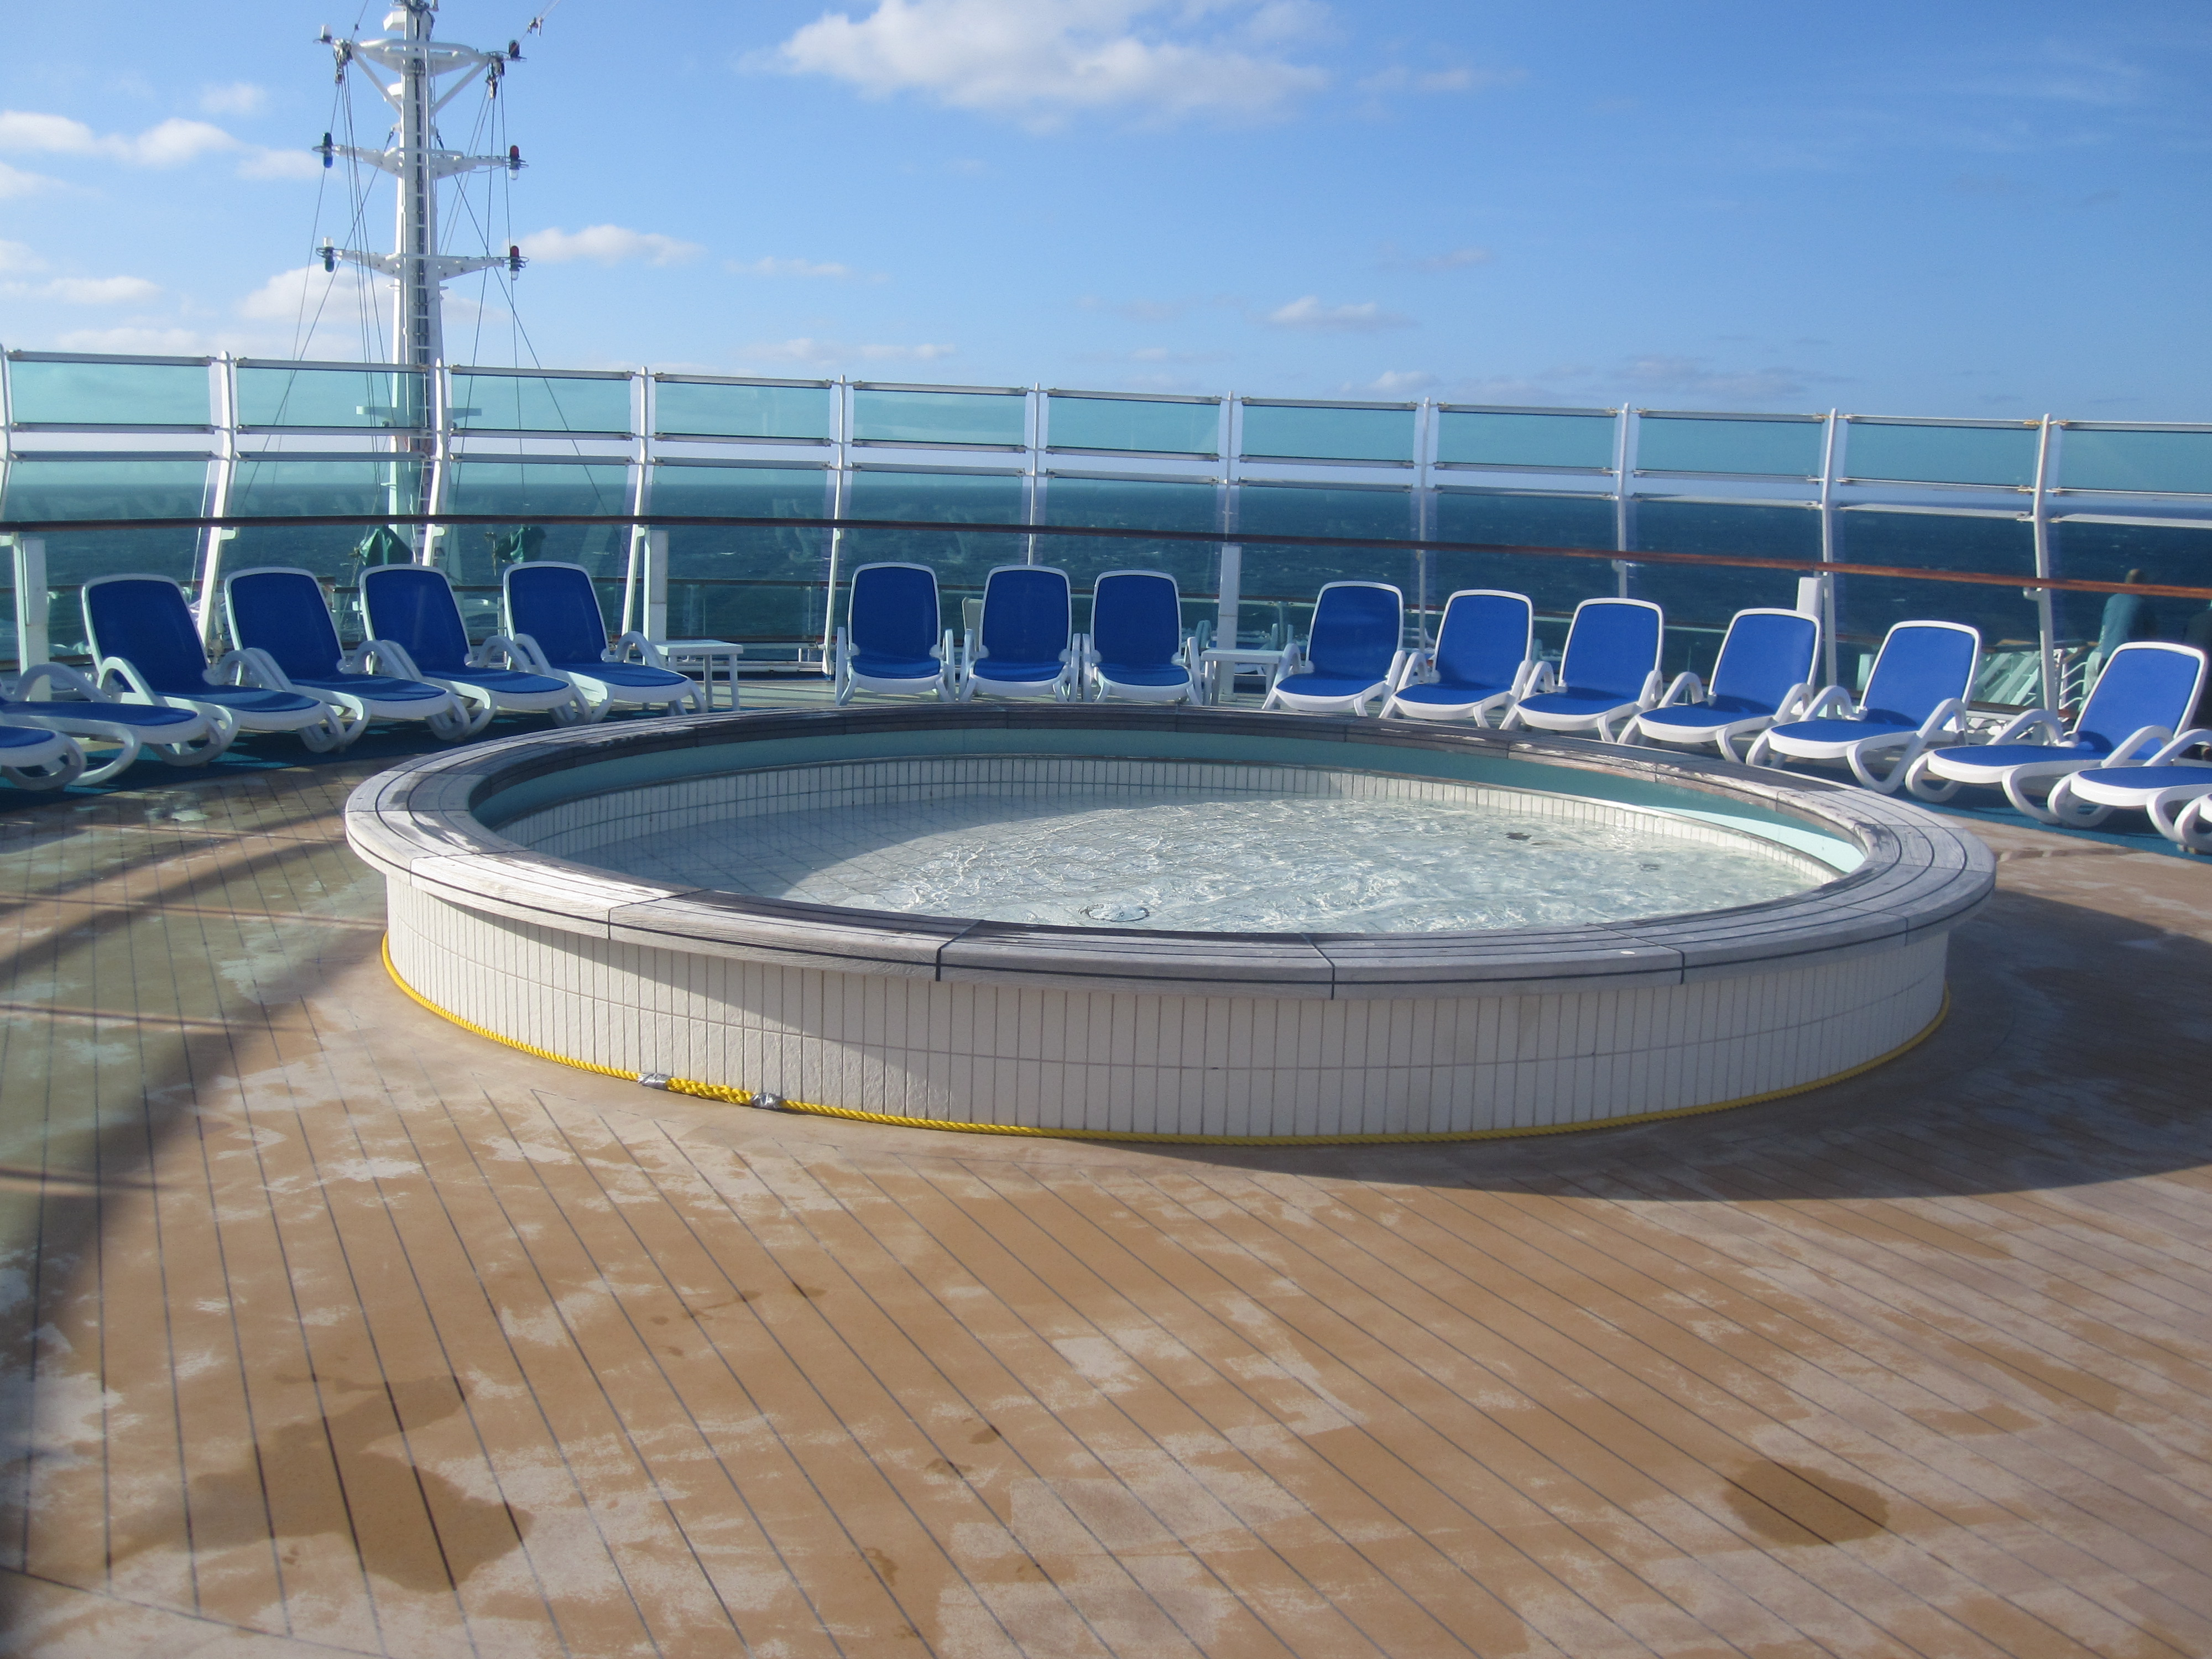 Haunted cruise ships cruisemiss cruise blog for River cruise ships with swimming pool